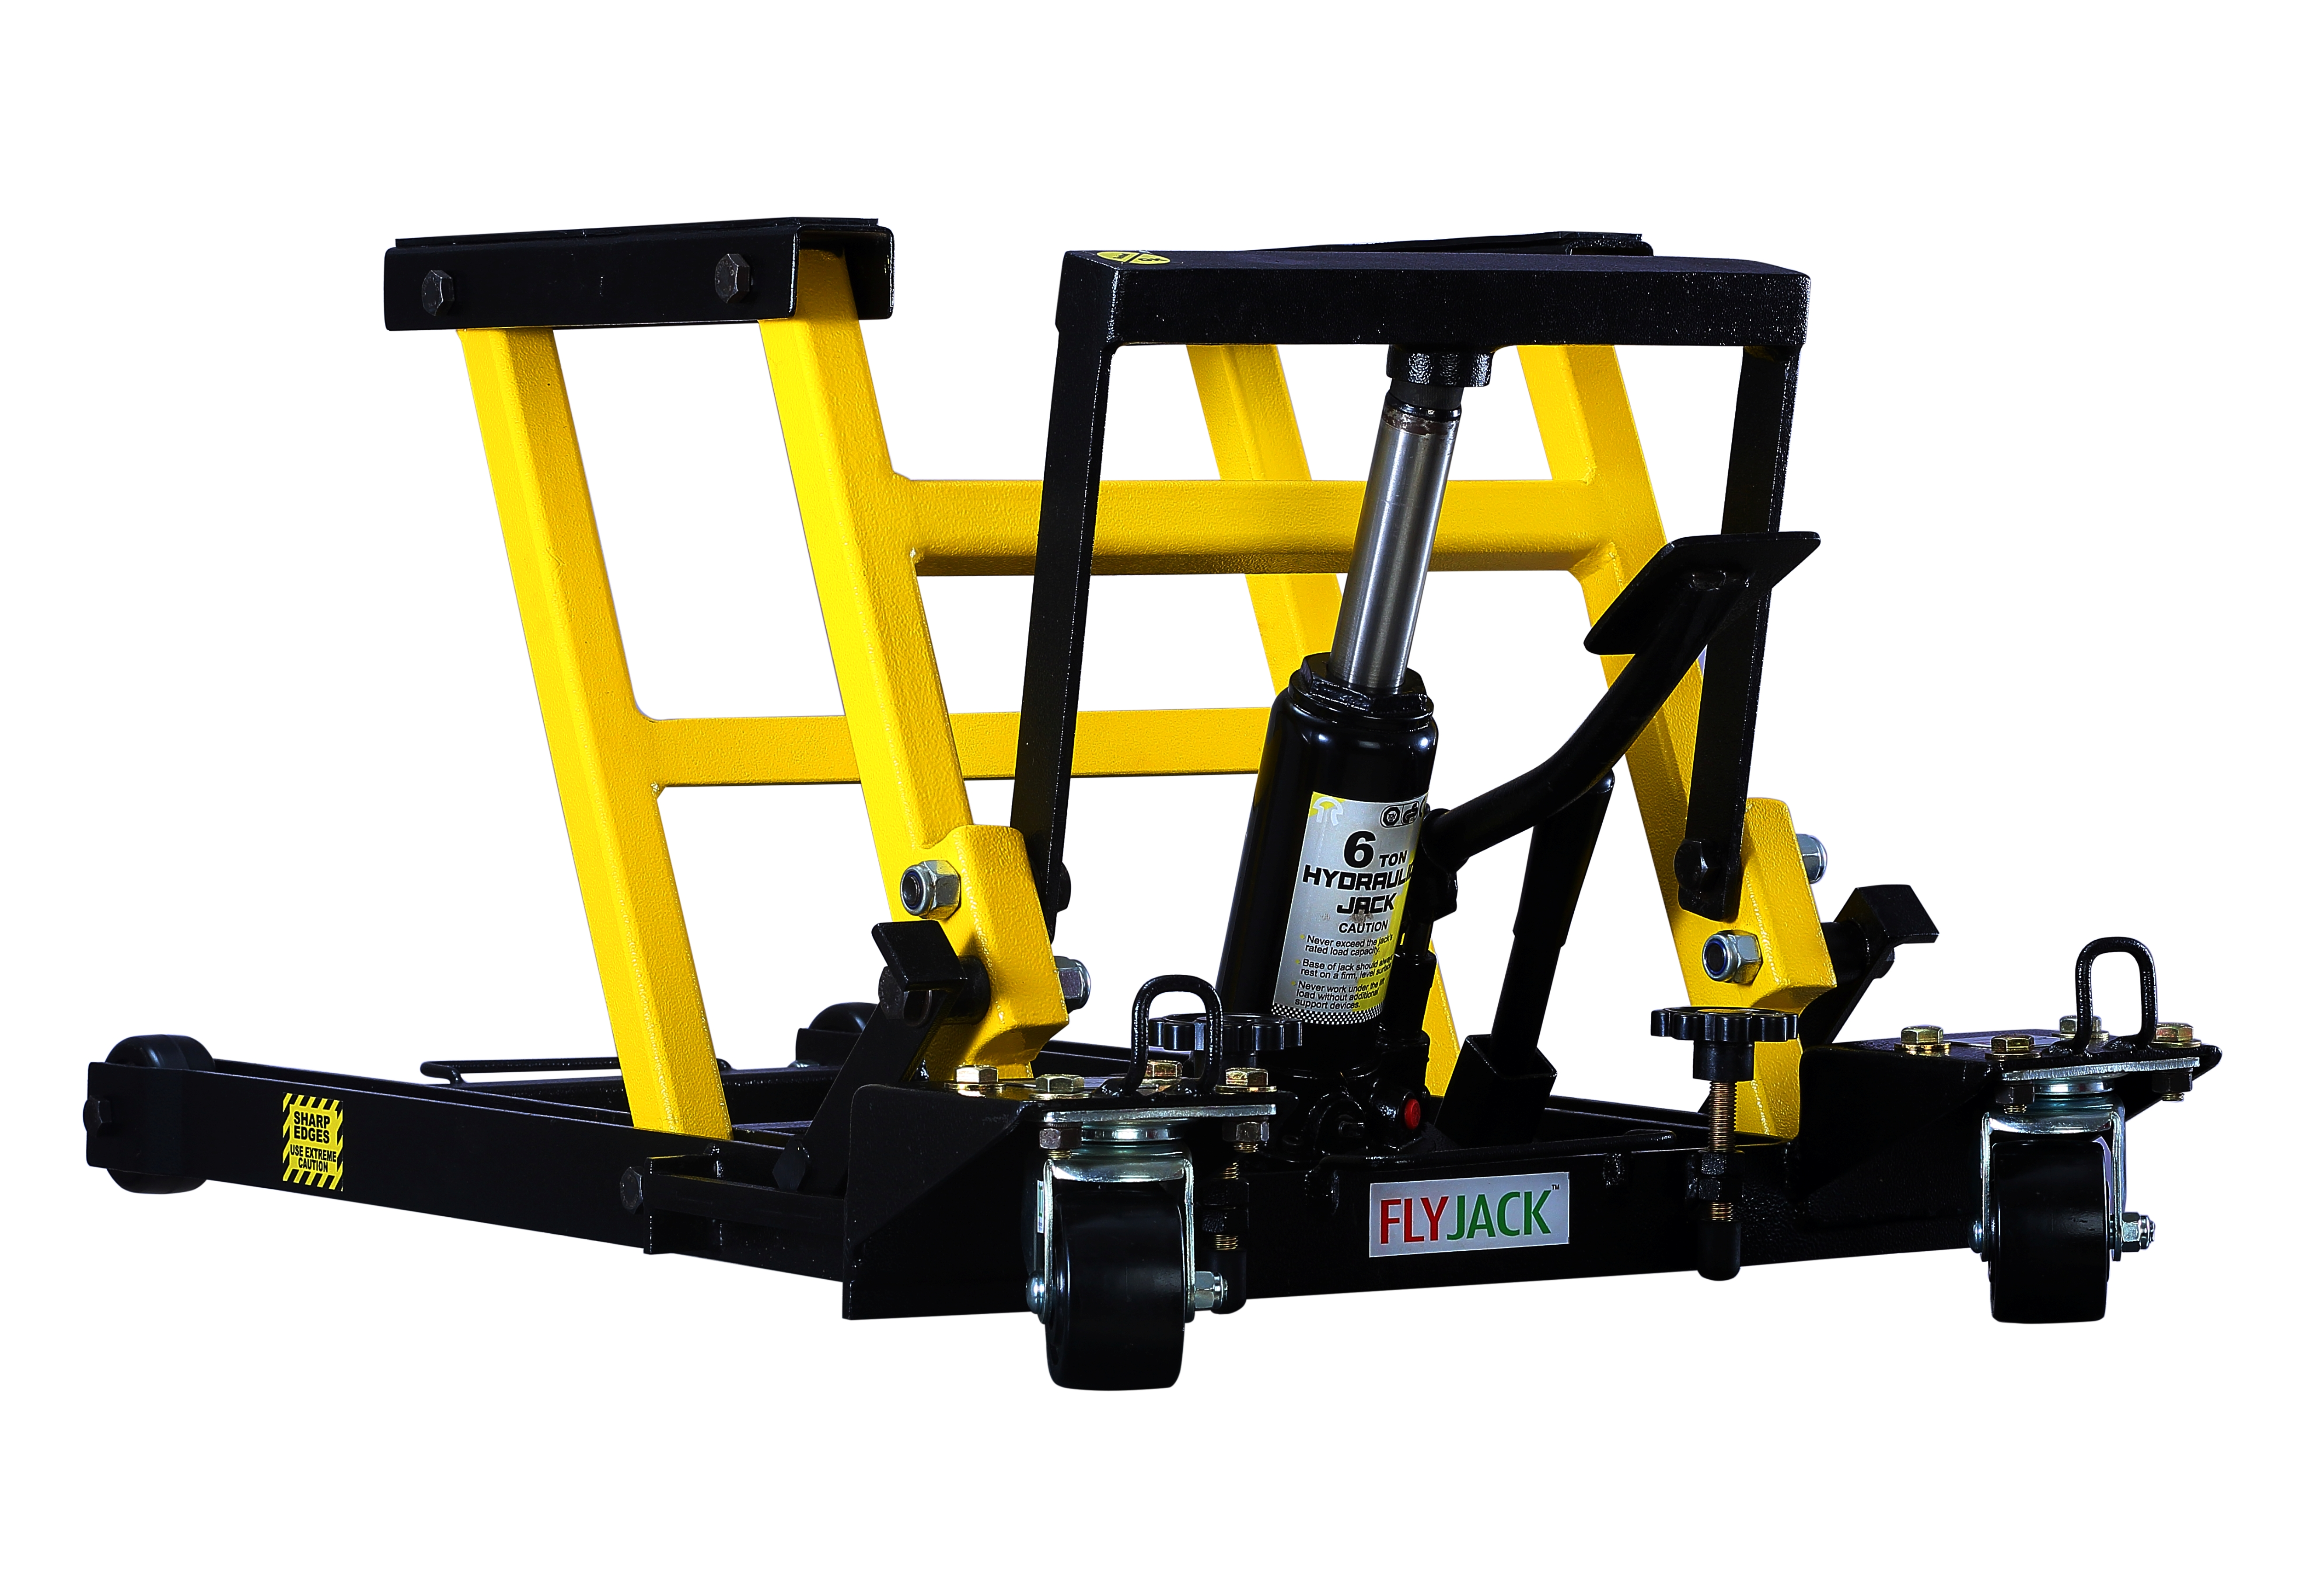 Best Motorcycle Lift : Flyjack the world s best motorcycle lifts accessories